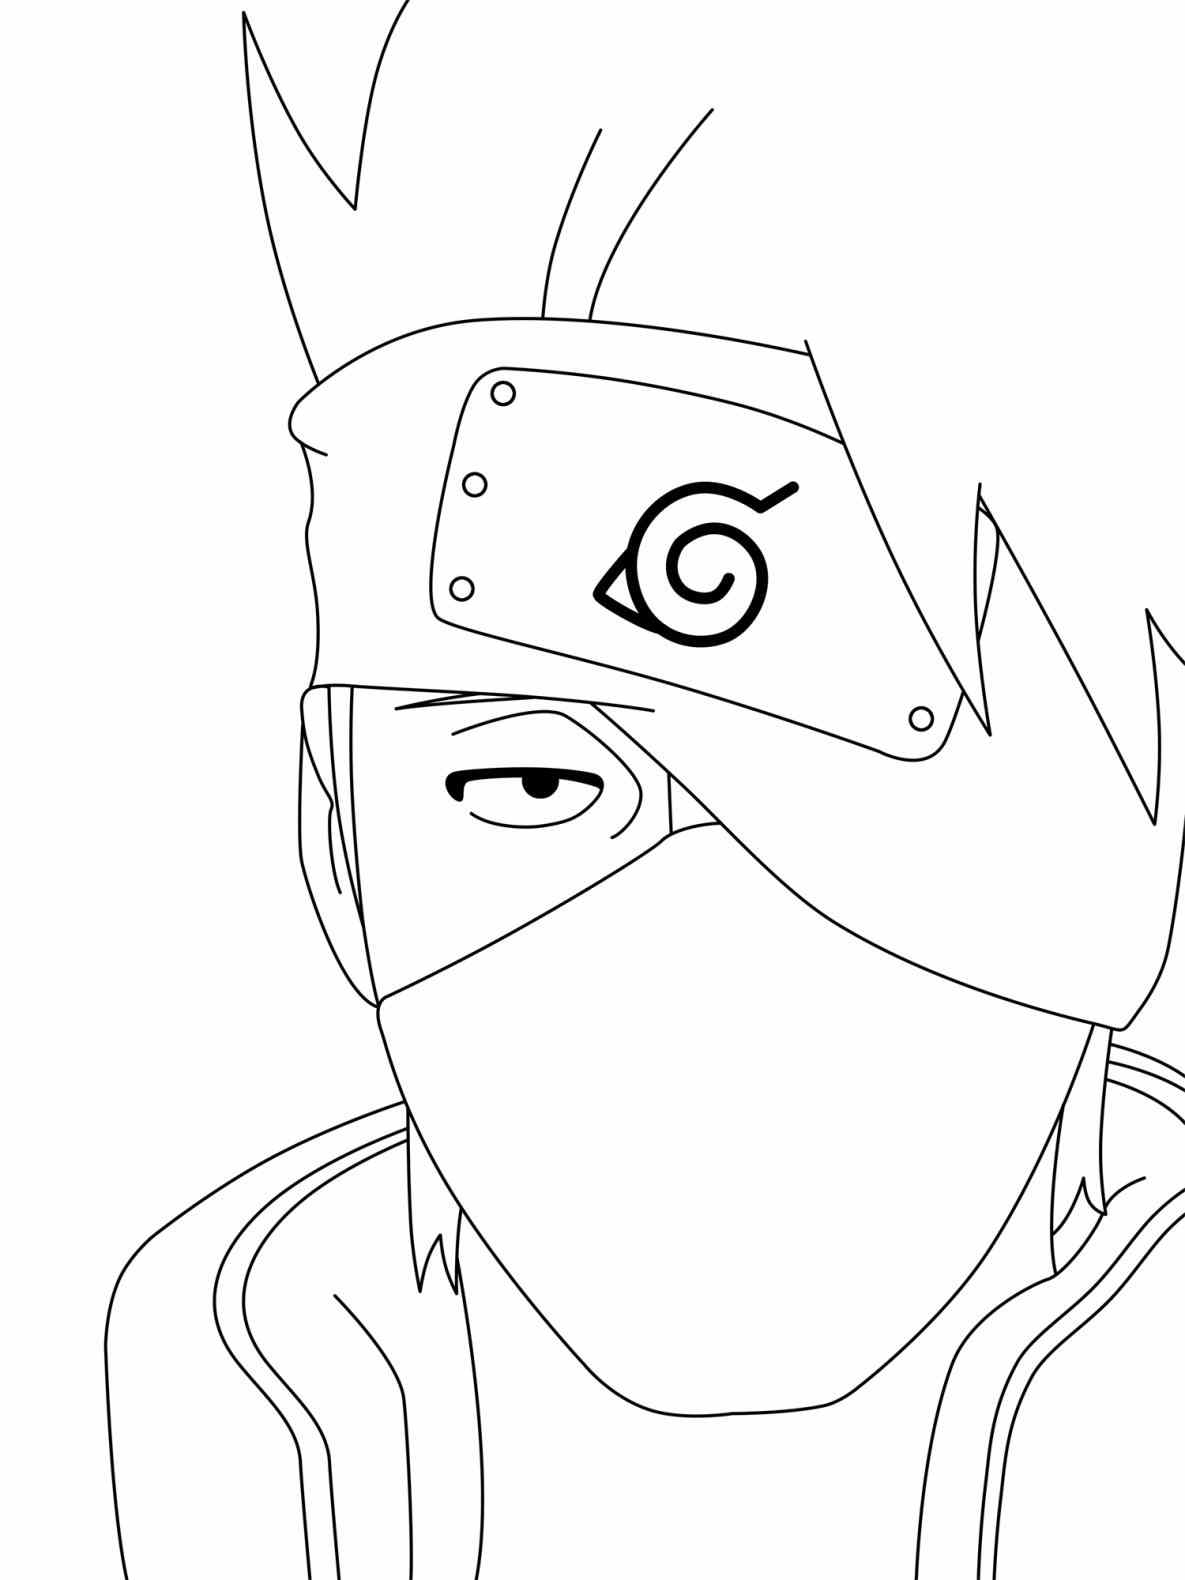 1185x1580 Papadimebag Anbu Kakashi Hatake Drawing Easy By Papadimebag